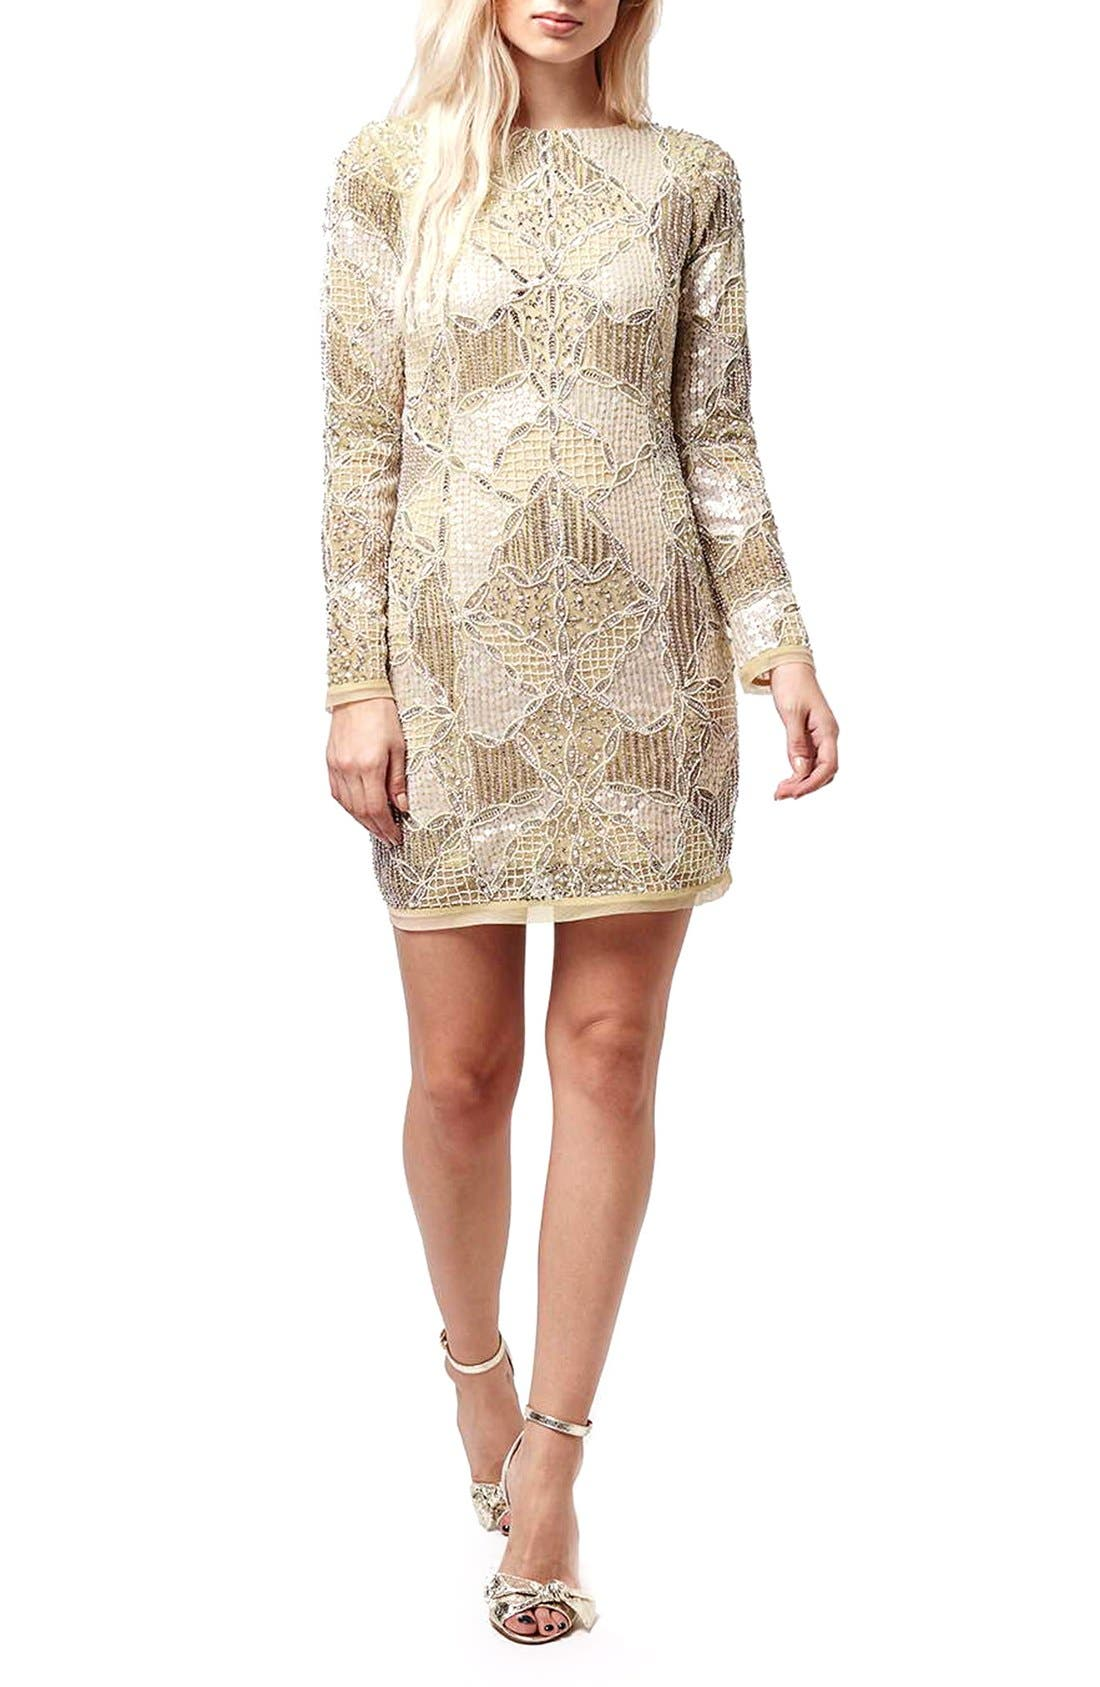 Alternate Image 1 Selected - Topshop 'Gigi' Embellished Body-Con Dress (Regular & Petite)